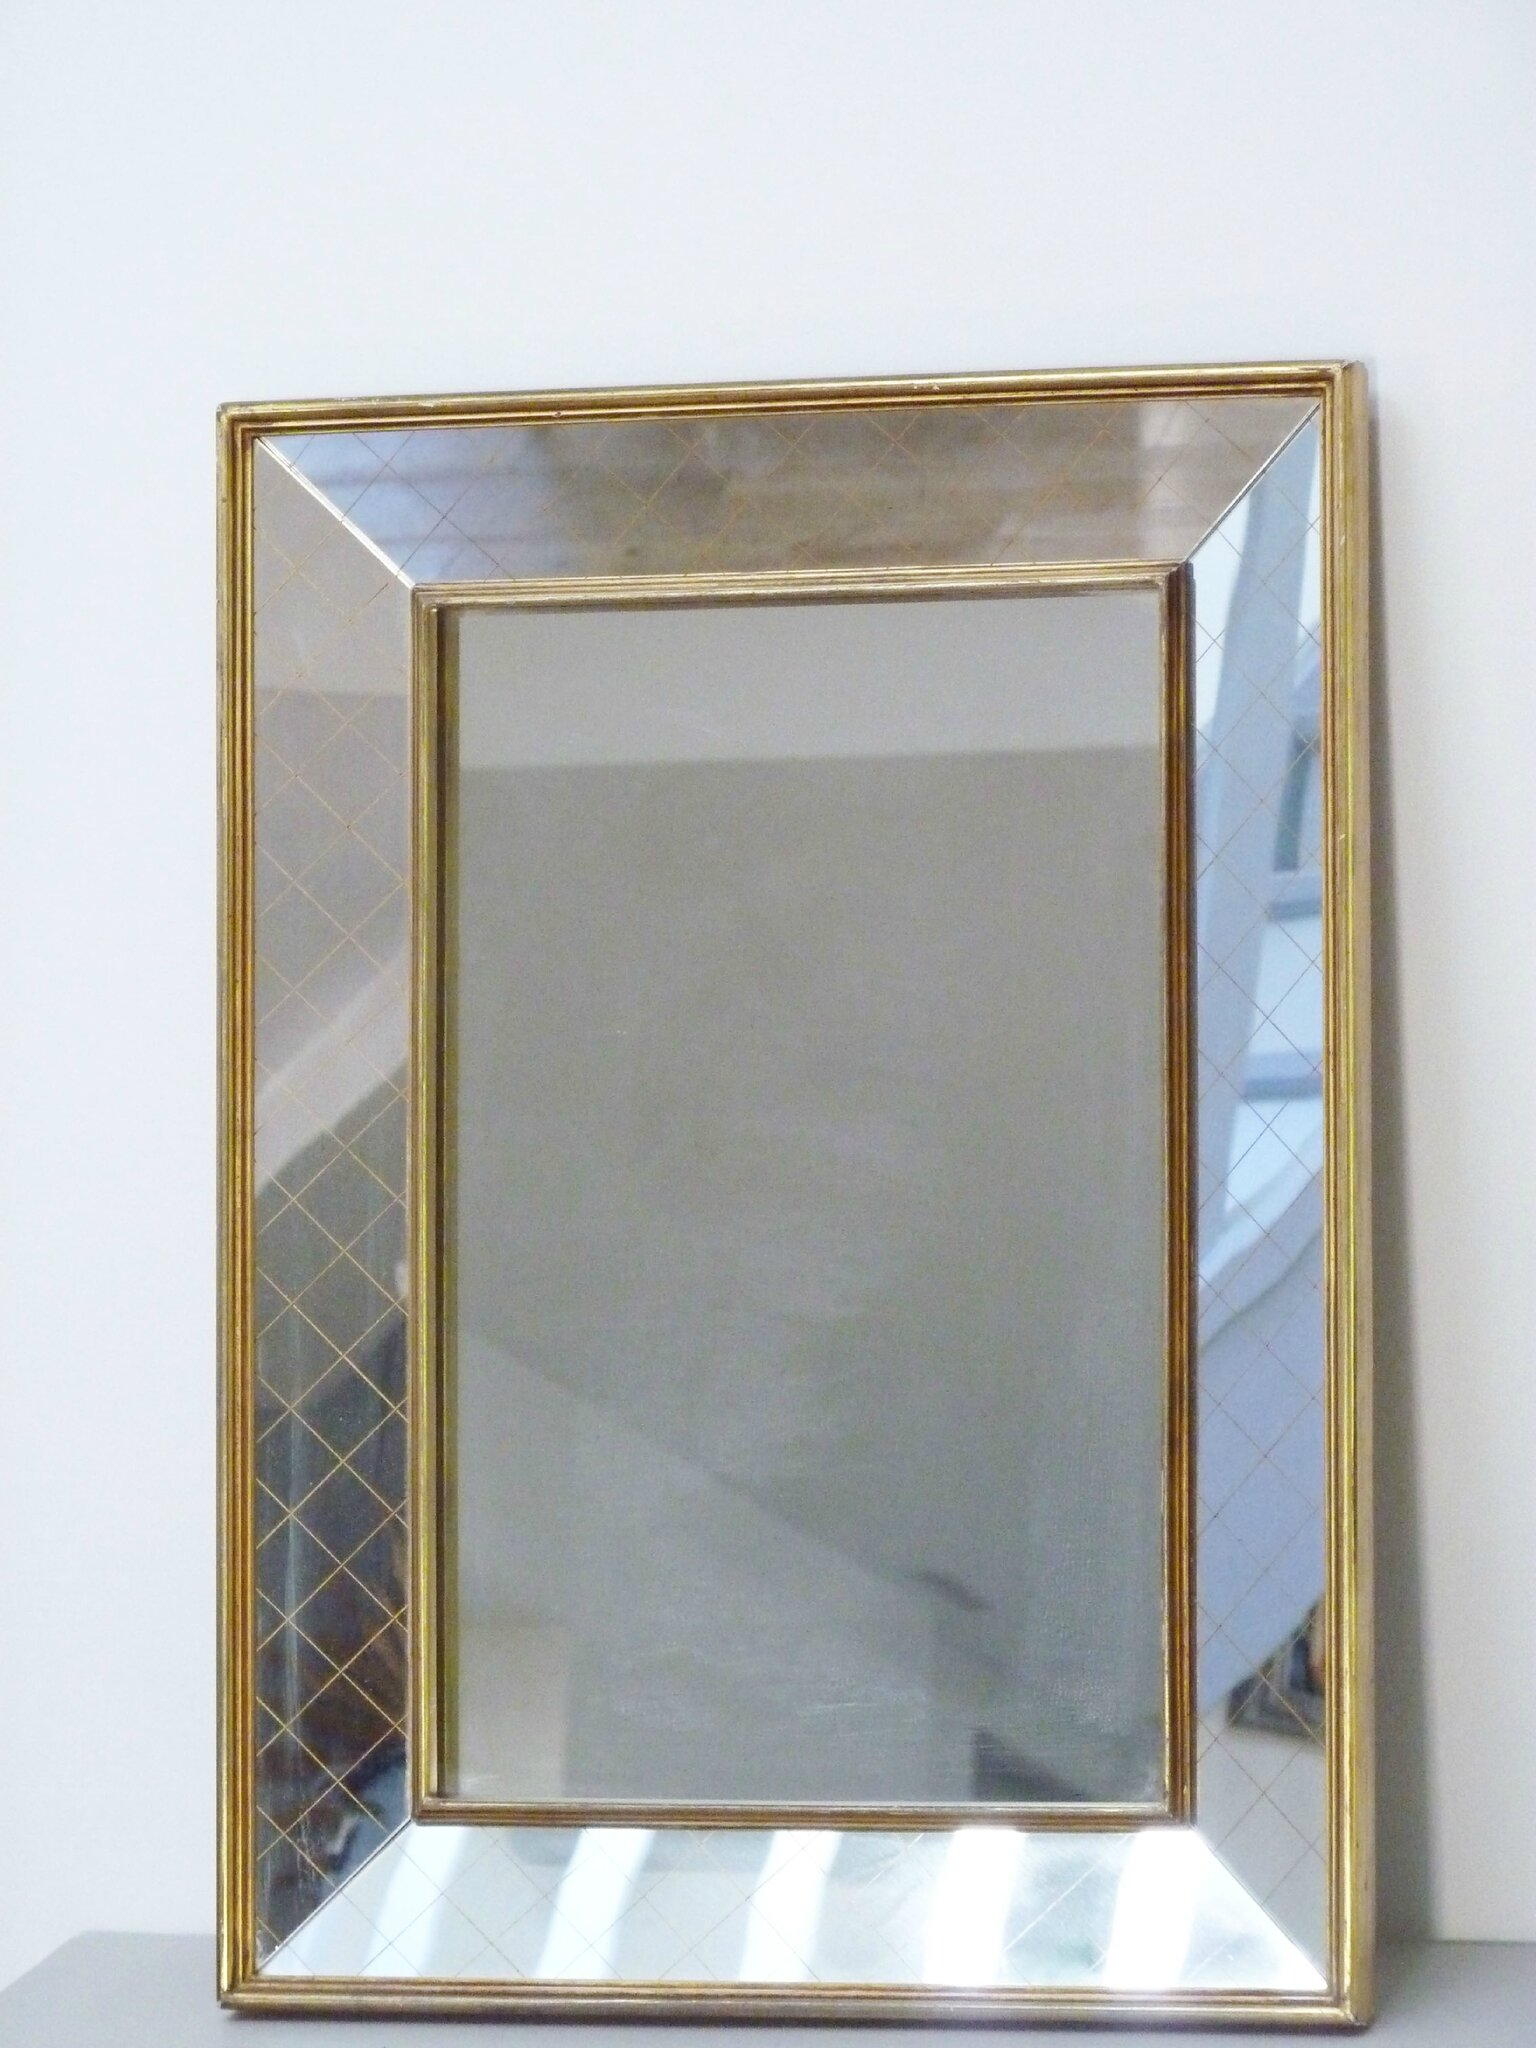 Miroir oh mes beaux miroirs charlotsometimes for Beaux miroirs